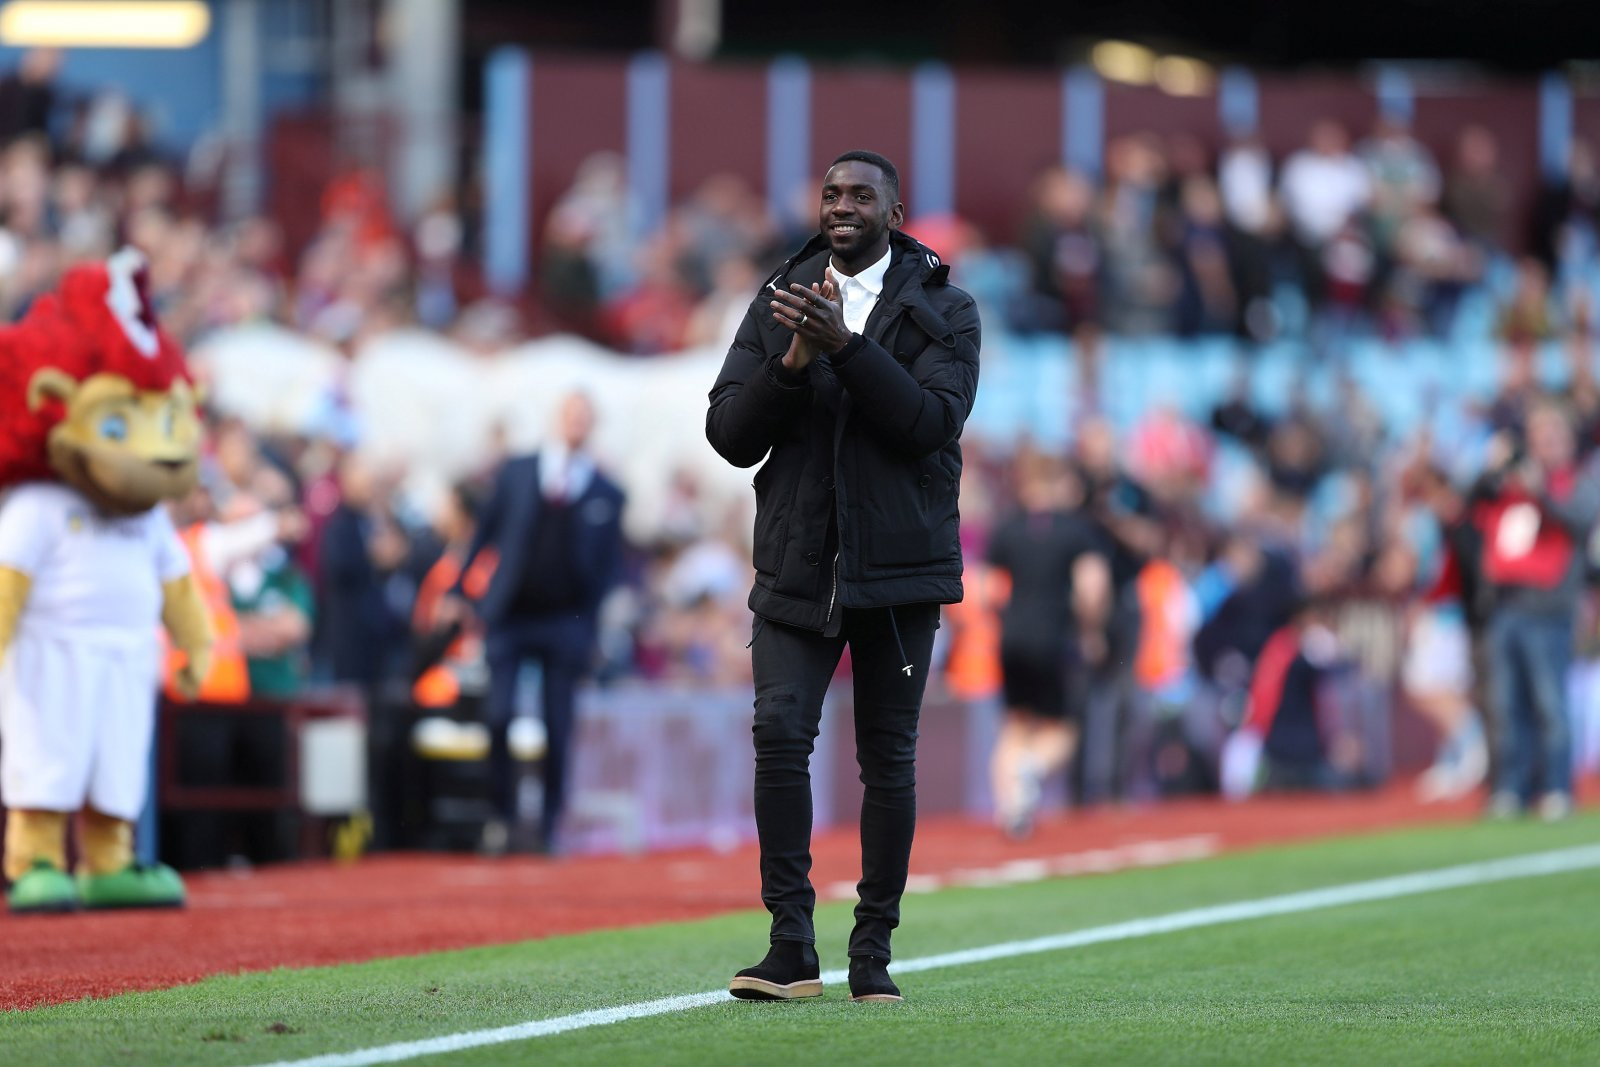 Steve Bruce simply has to start Yannick Bolasie if Aston Villa are to thump Bristol City tonight